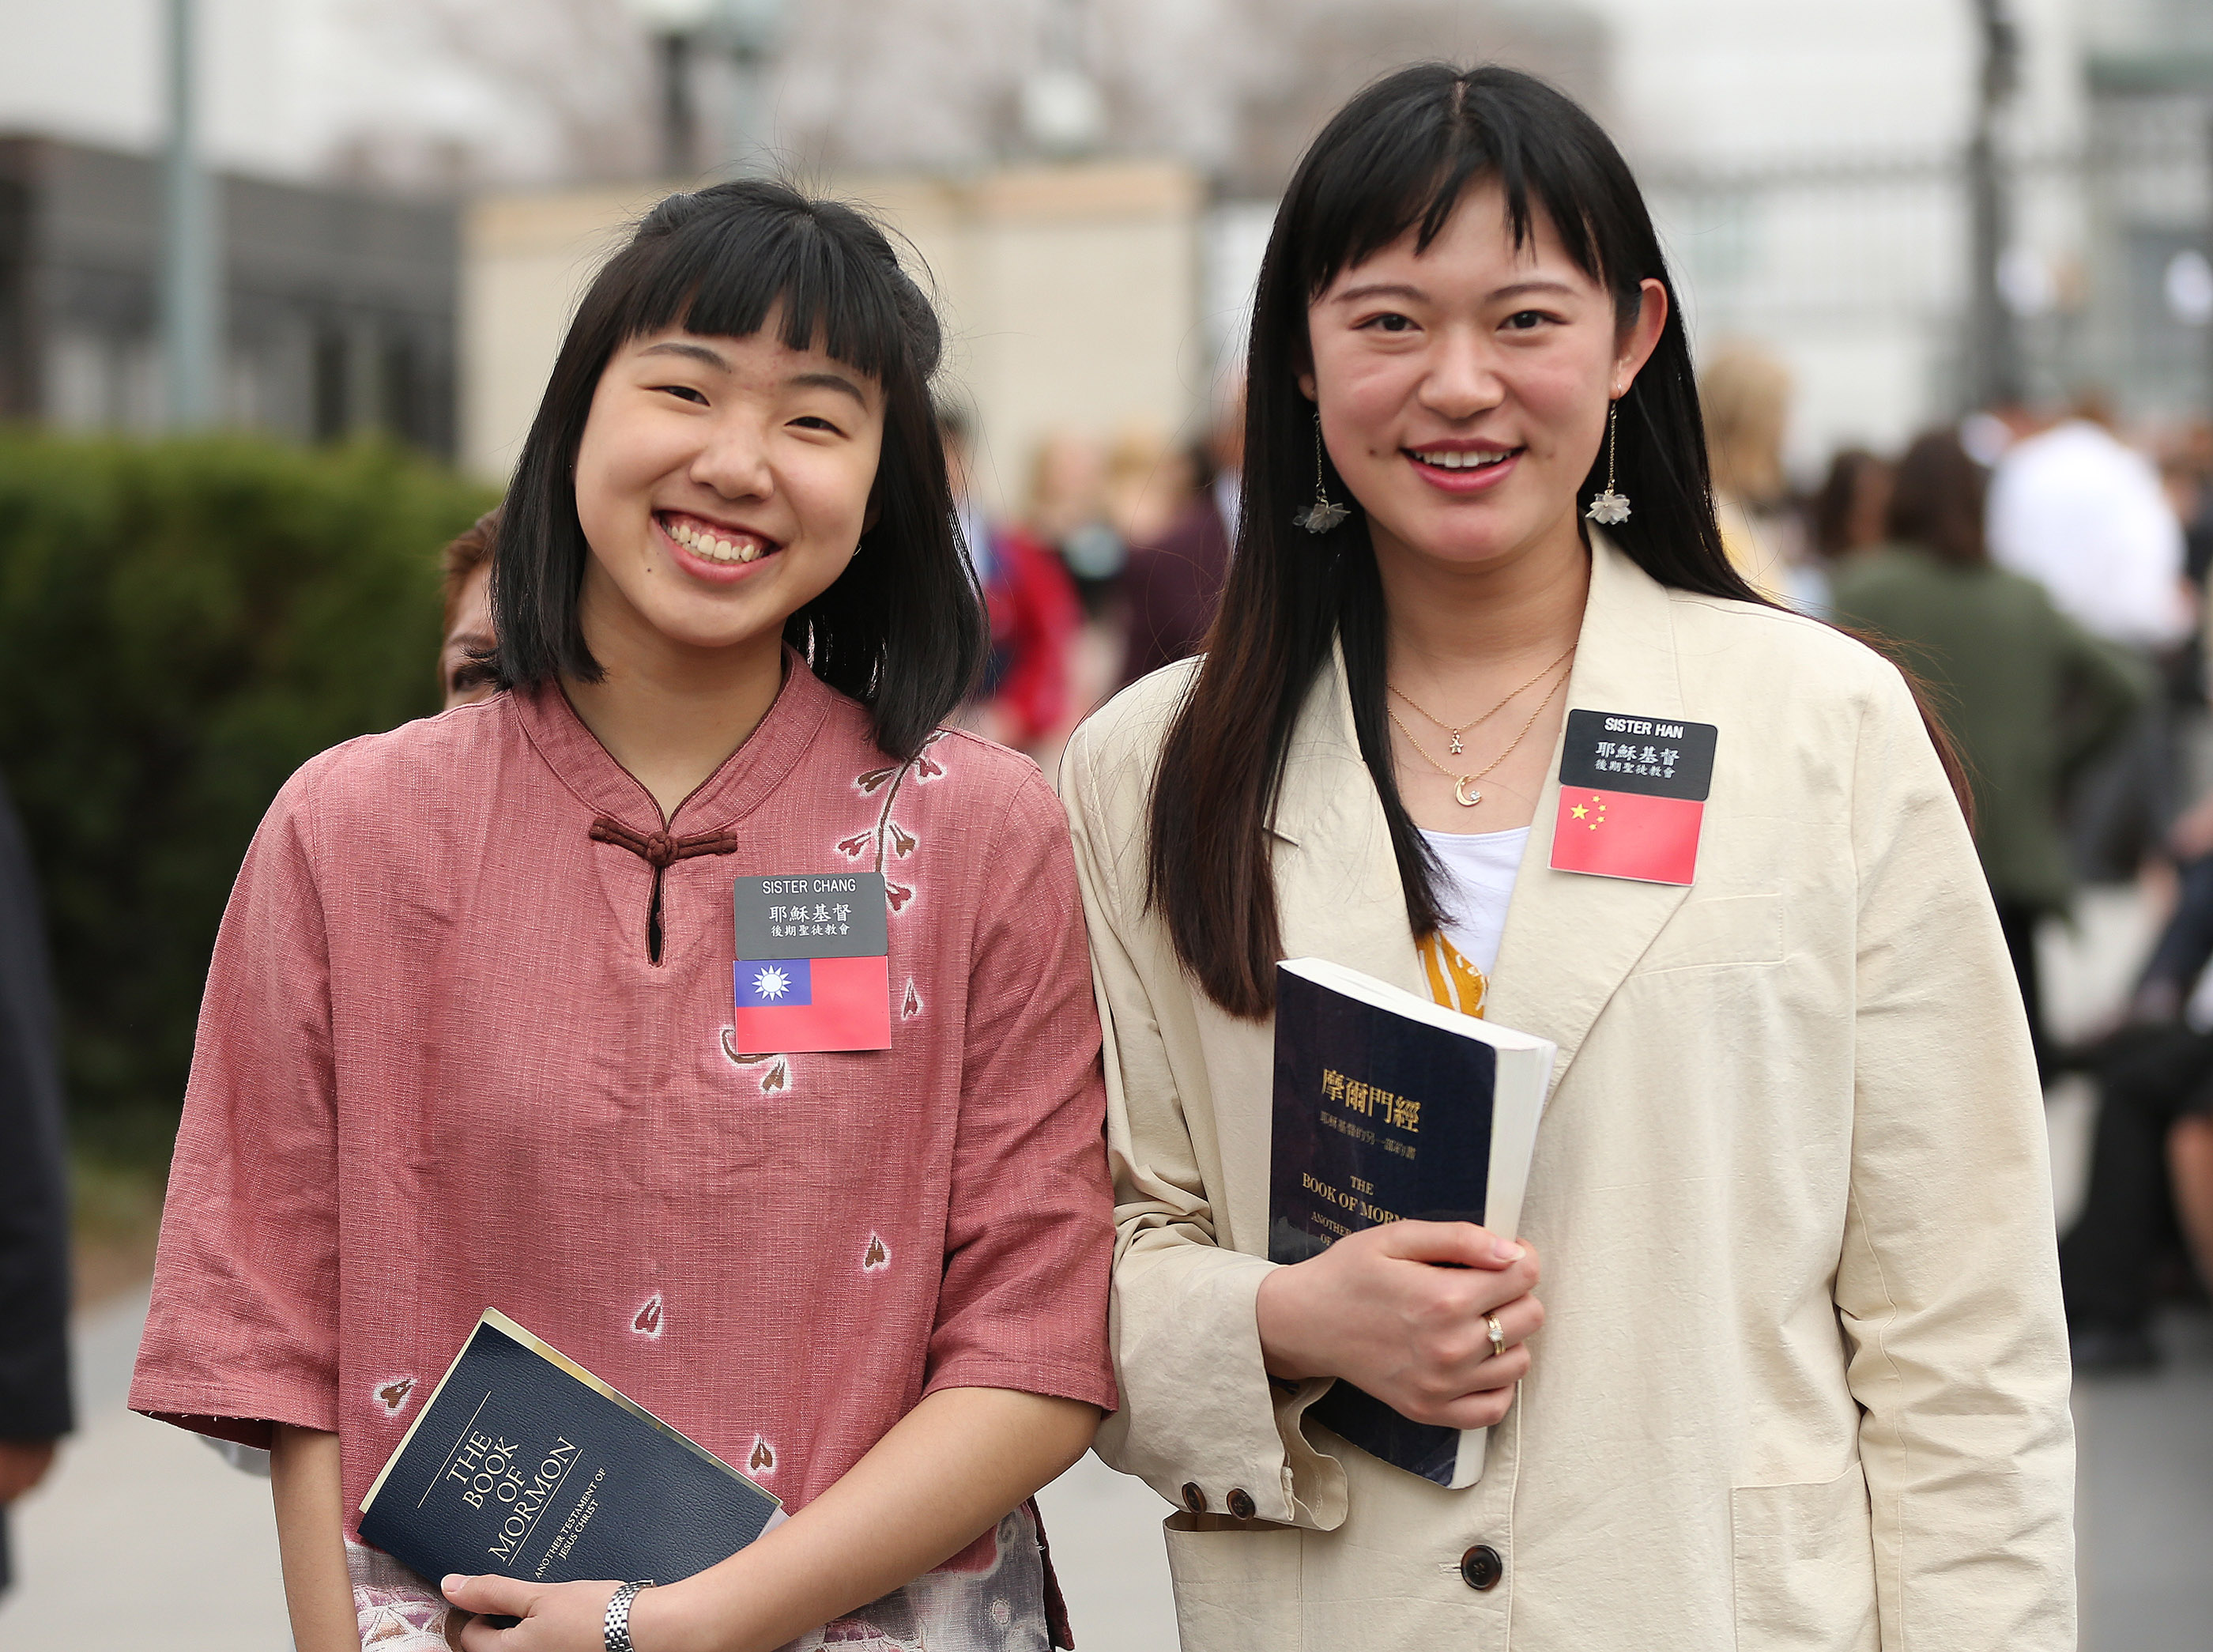 Sister Yian Chang and Sister Mehgyuan Han pause during the 189th Annual General Conference of The Church of Jesus Christ of Latter-day Saints in Salt Lake City on Sunday, April 7, 2019.